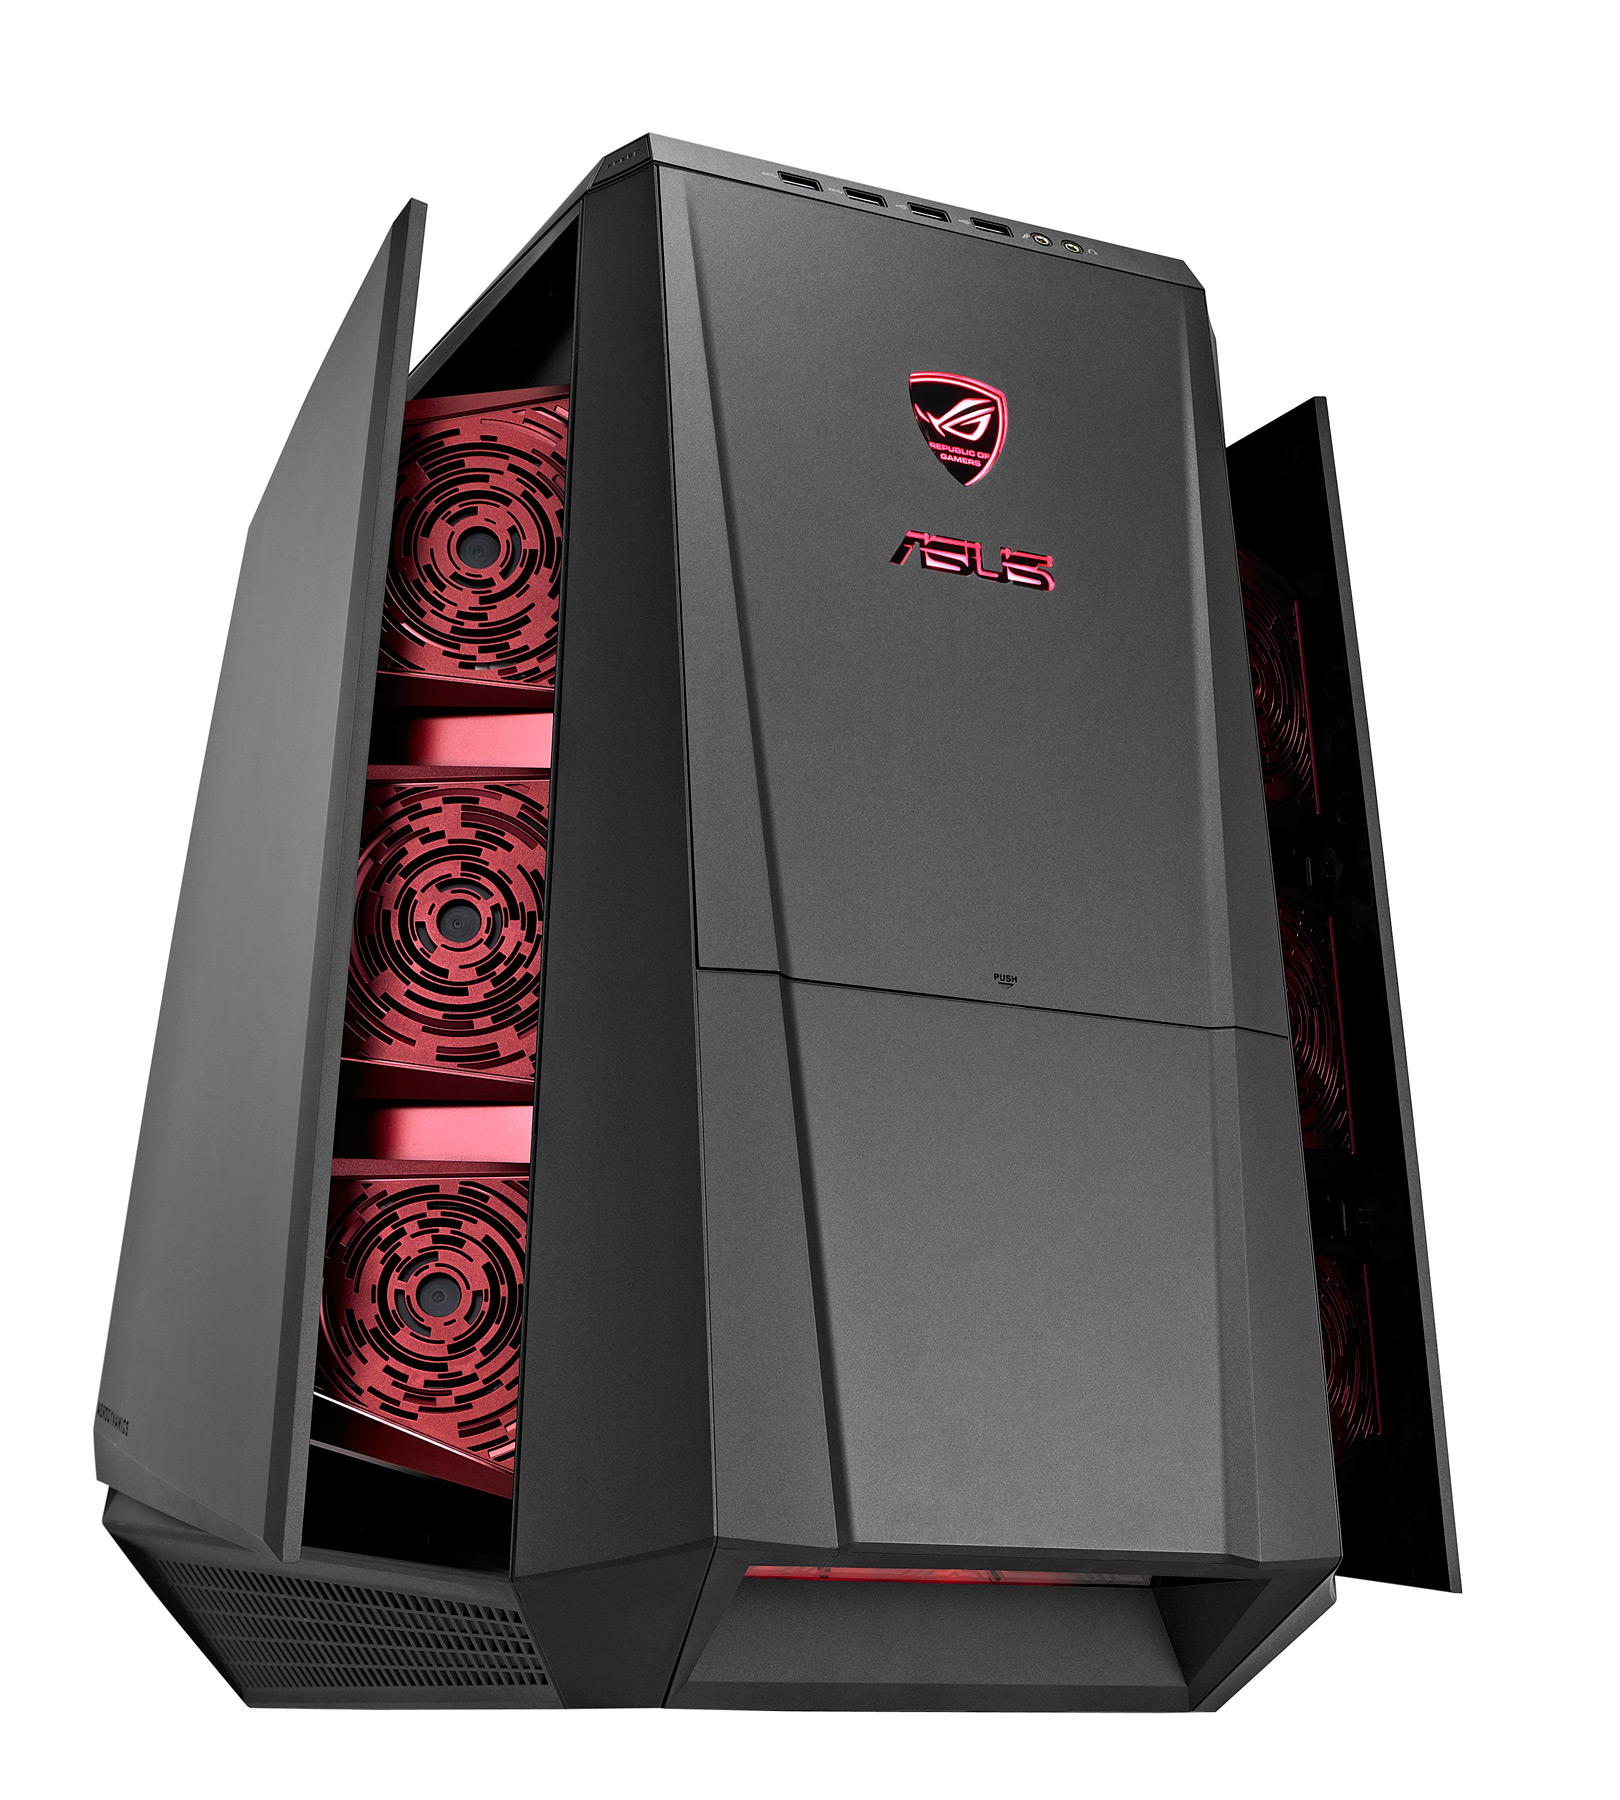 asus unveils the rog tytan cg8890 gaming desktop pc equipped with liquid cooled i7 3960x. Black Bedroom Furniture Sets. Home Design Ideas